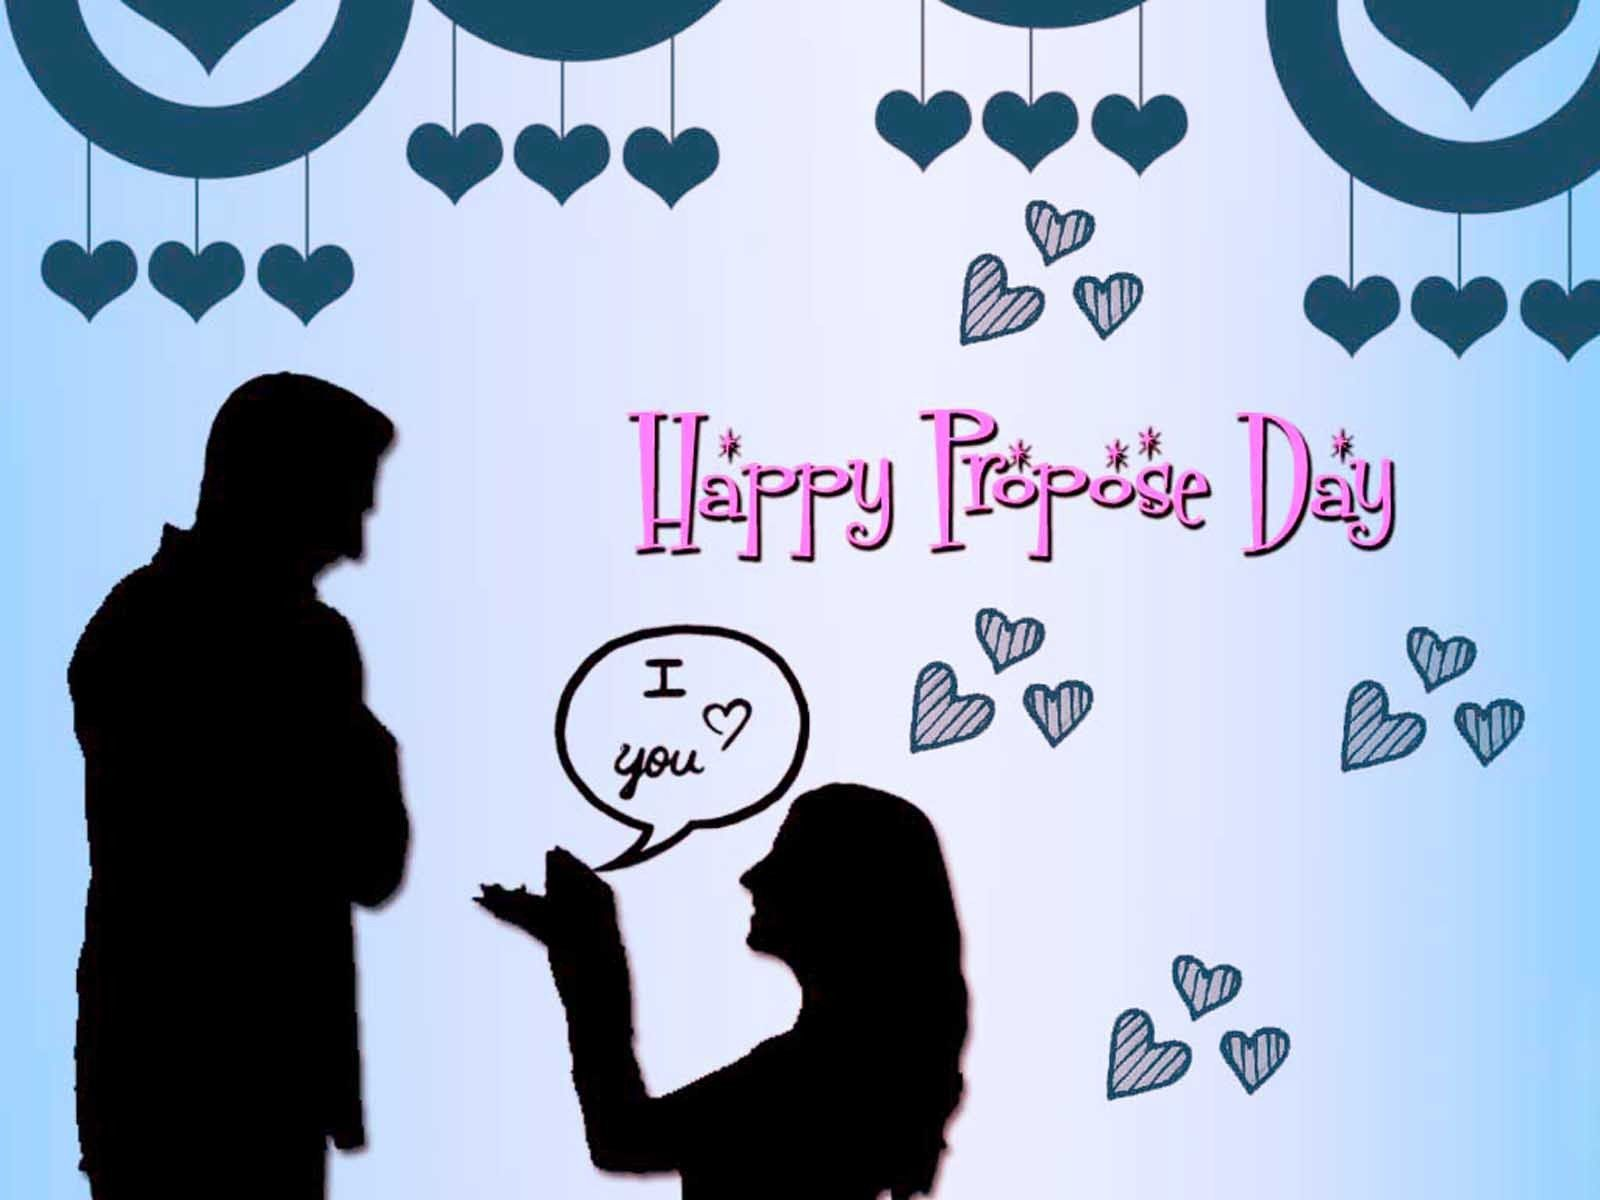 8th Feb 2018 Happy Propose Day Wallpapers Whatsapp dp Image Pics